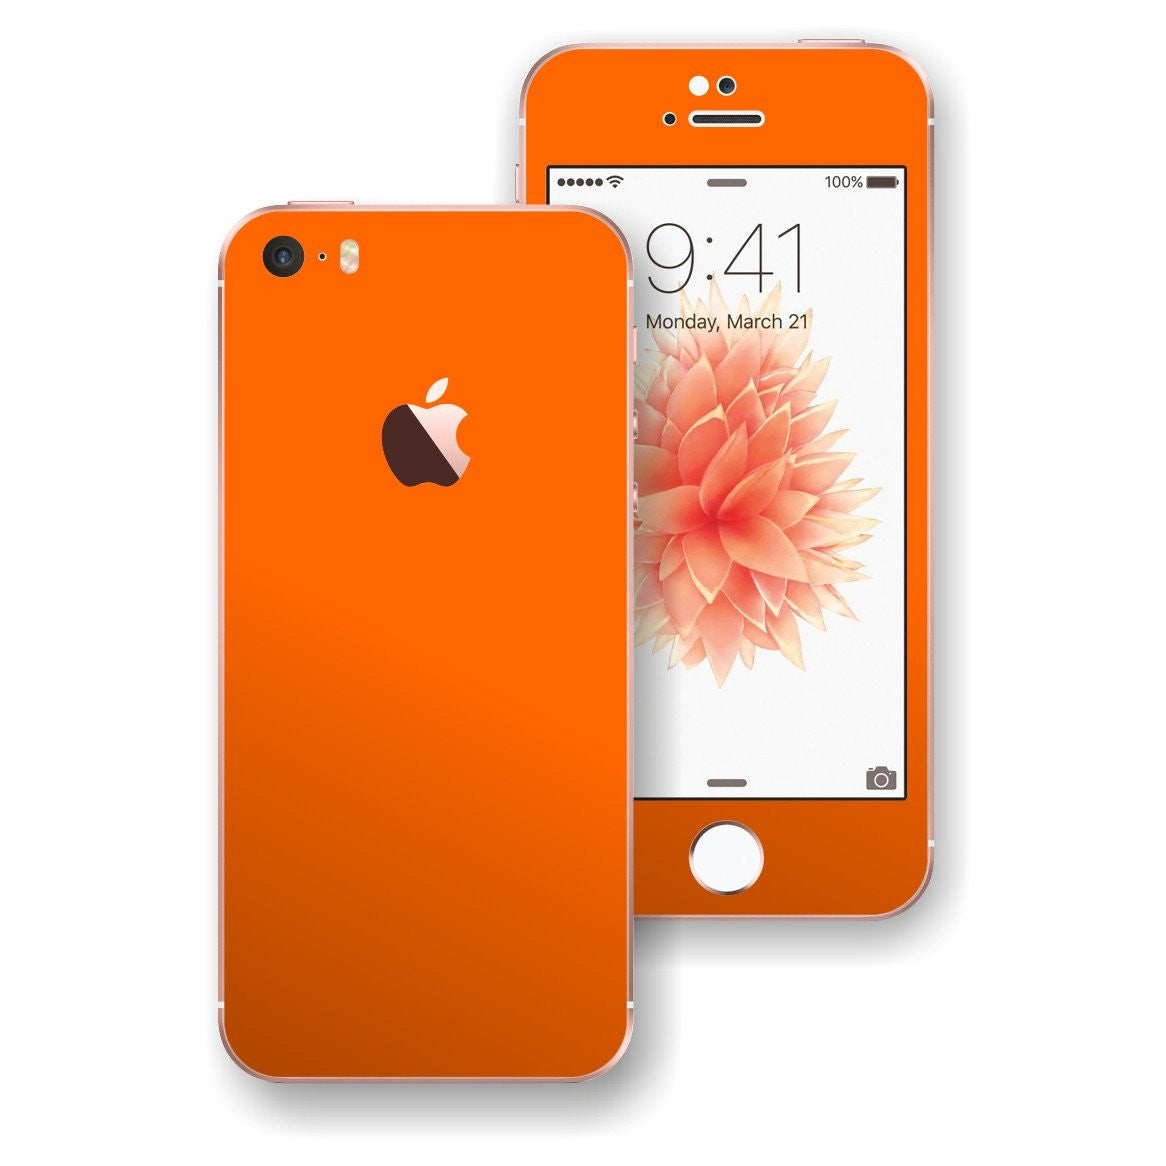 iPhone SE Orange Matt Matte Skin Wrap Decal Sticker Cover Protector by EasySkinz